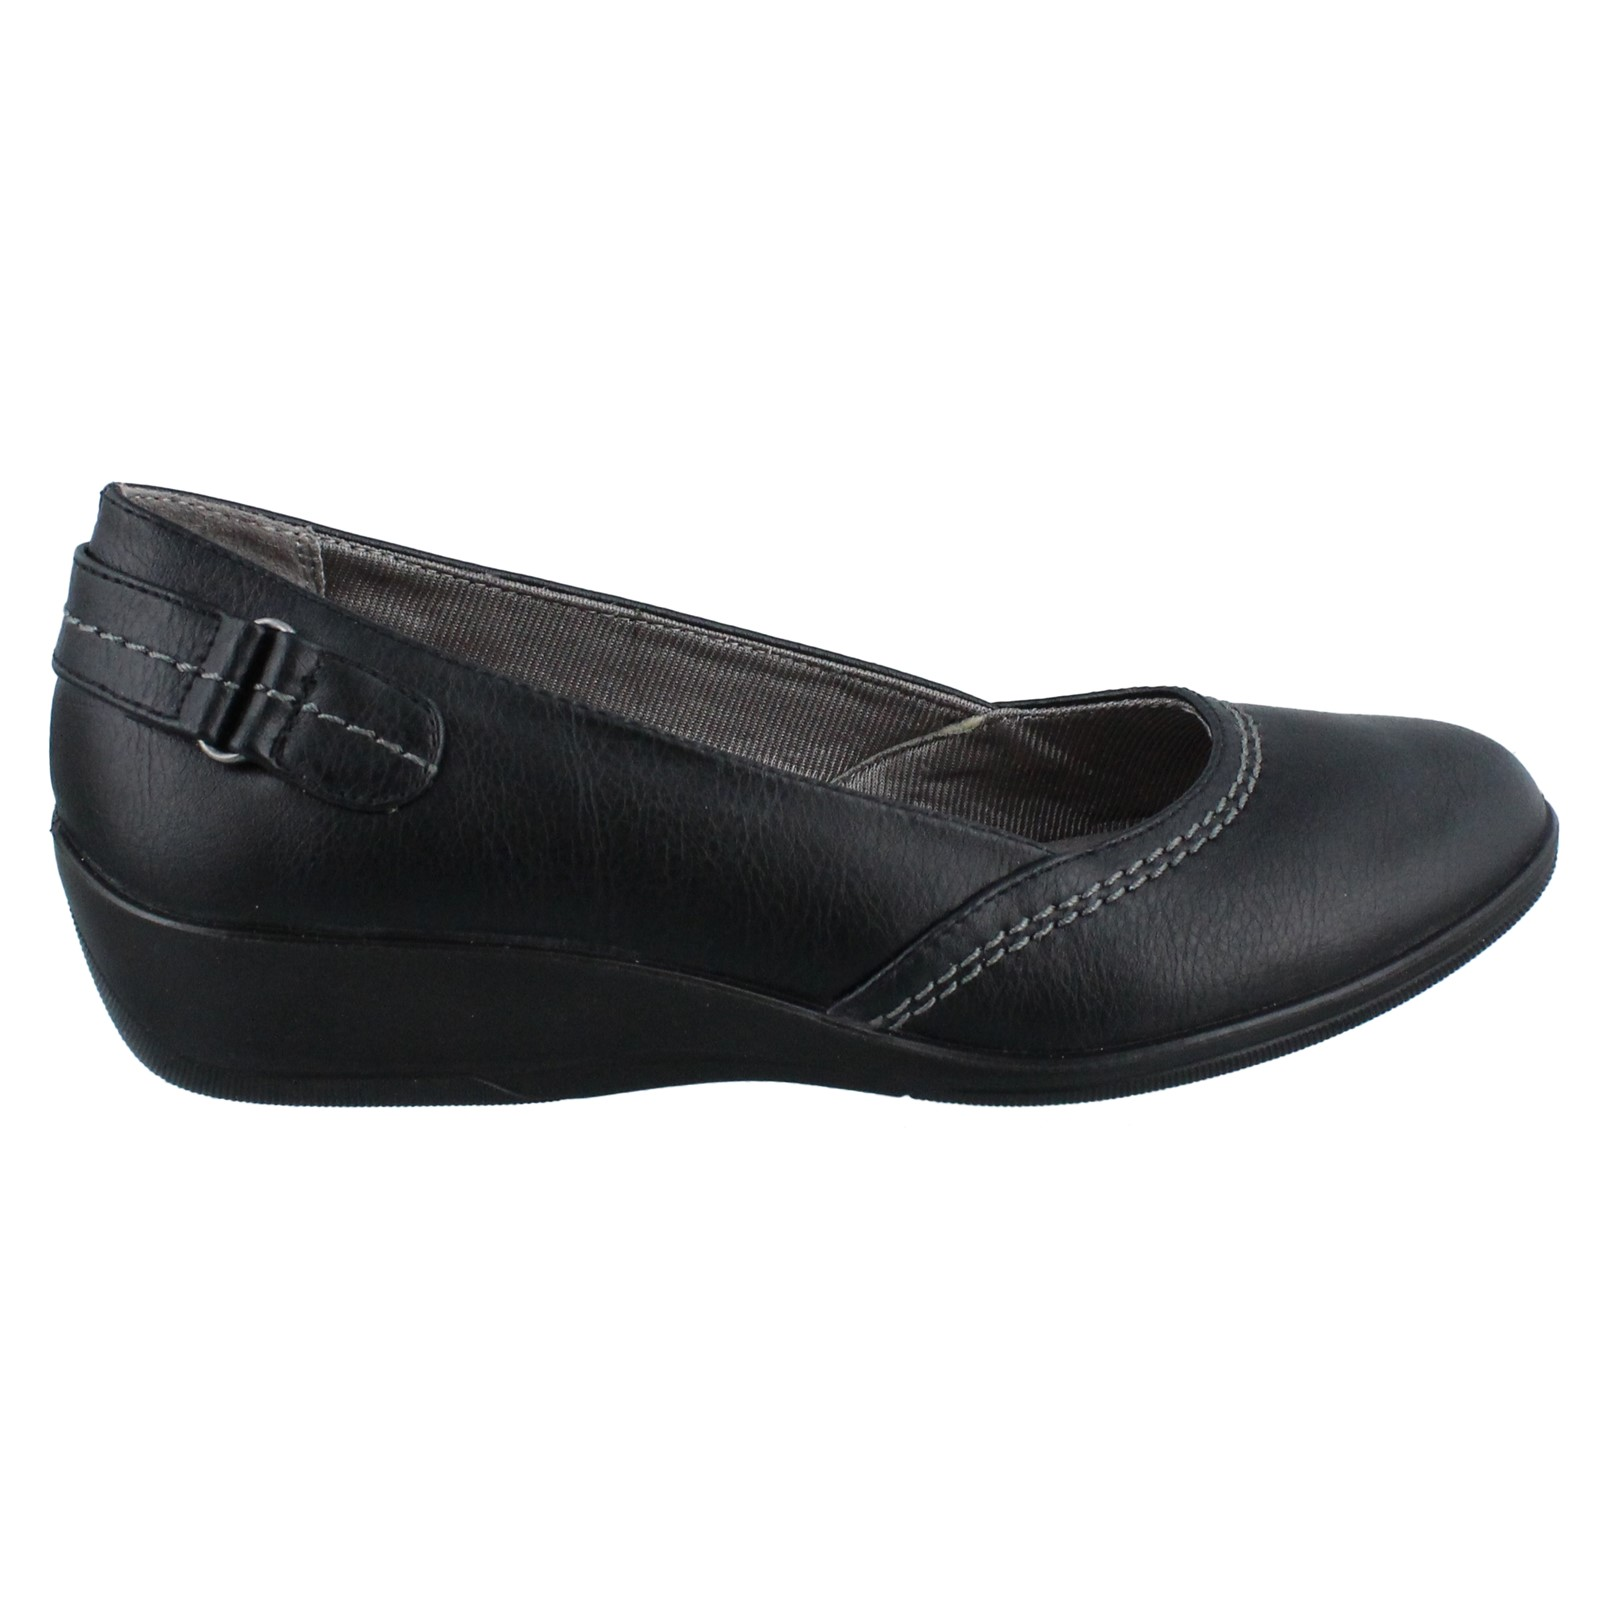 Women's Lifestride, Intellect Slip on Shoes